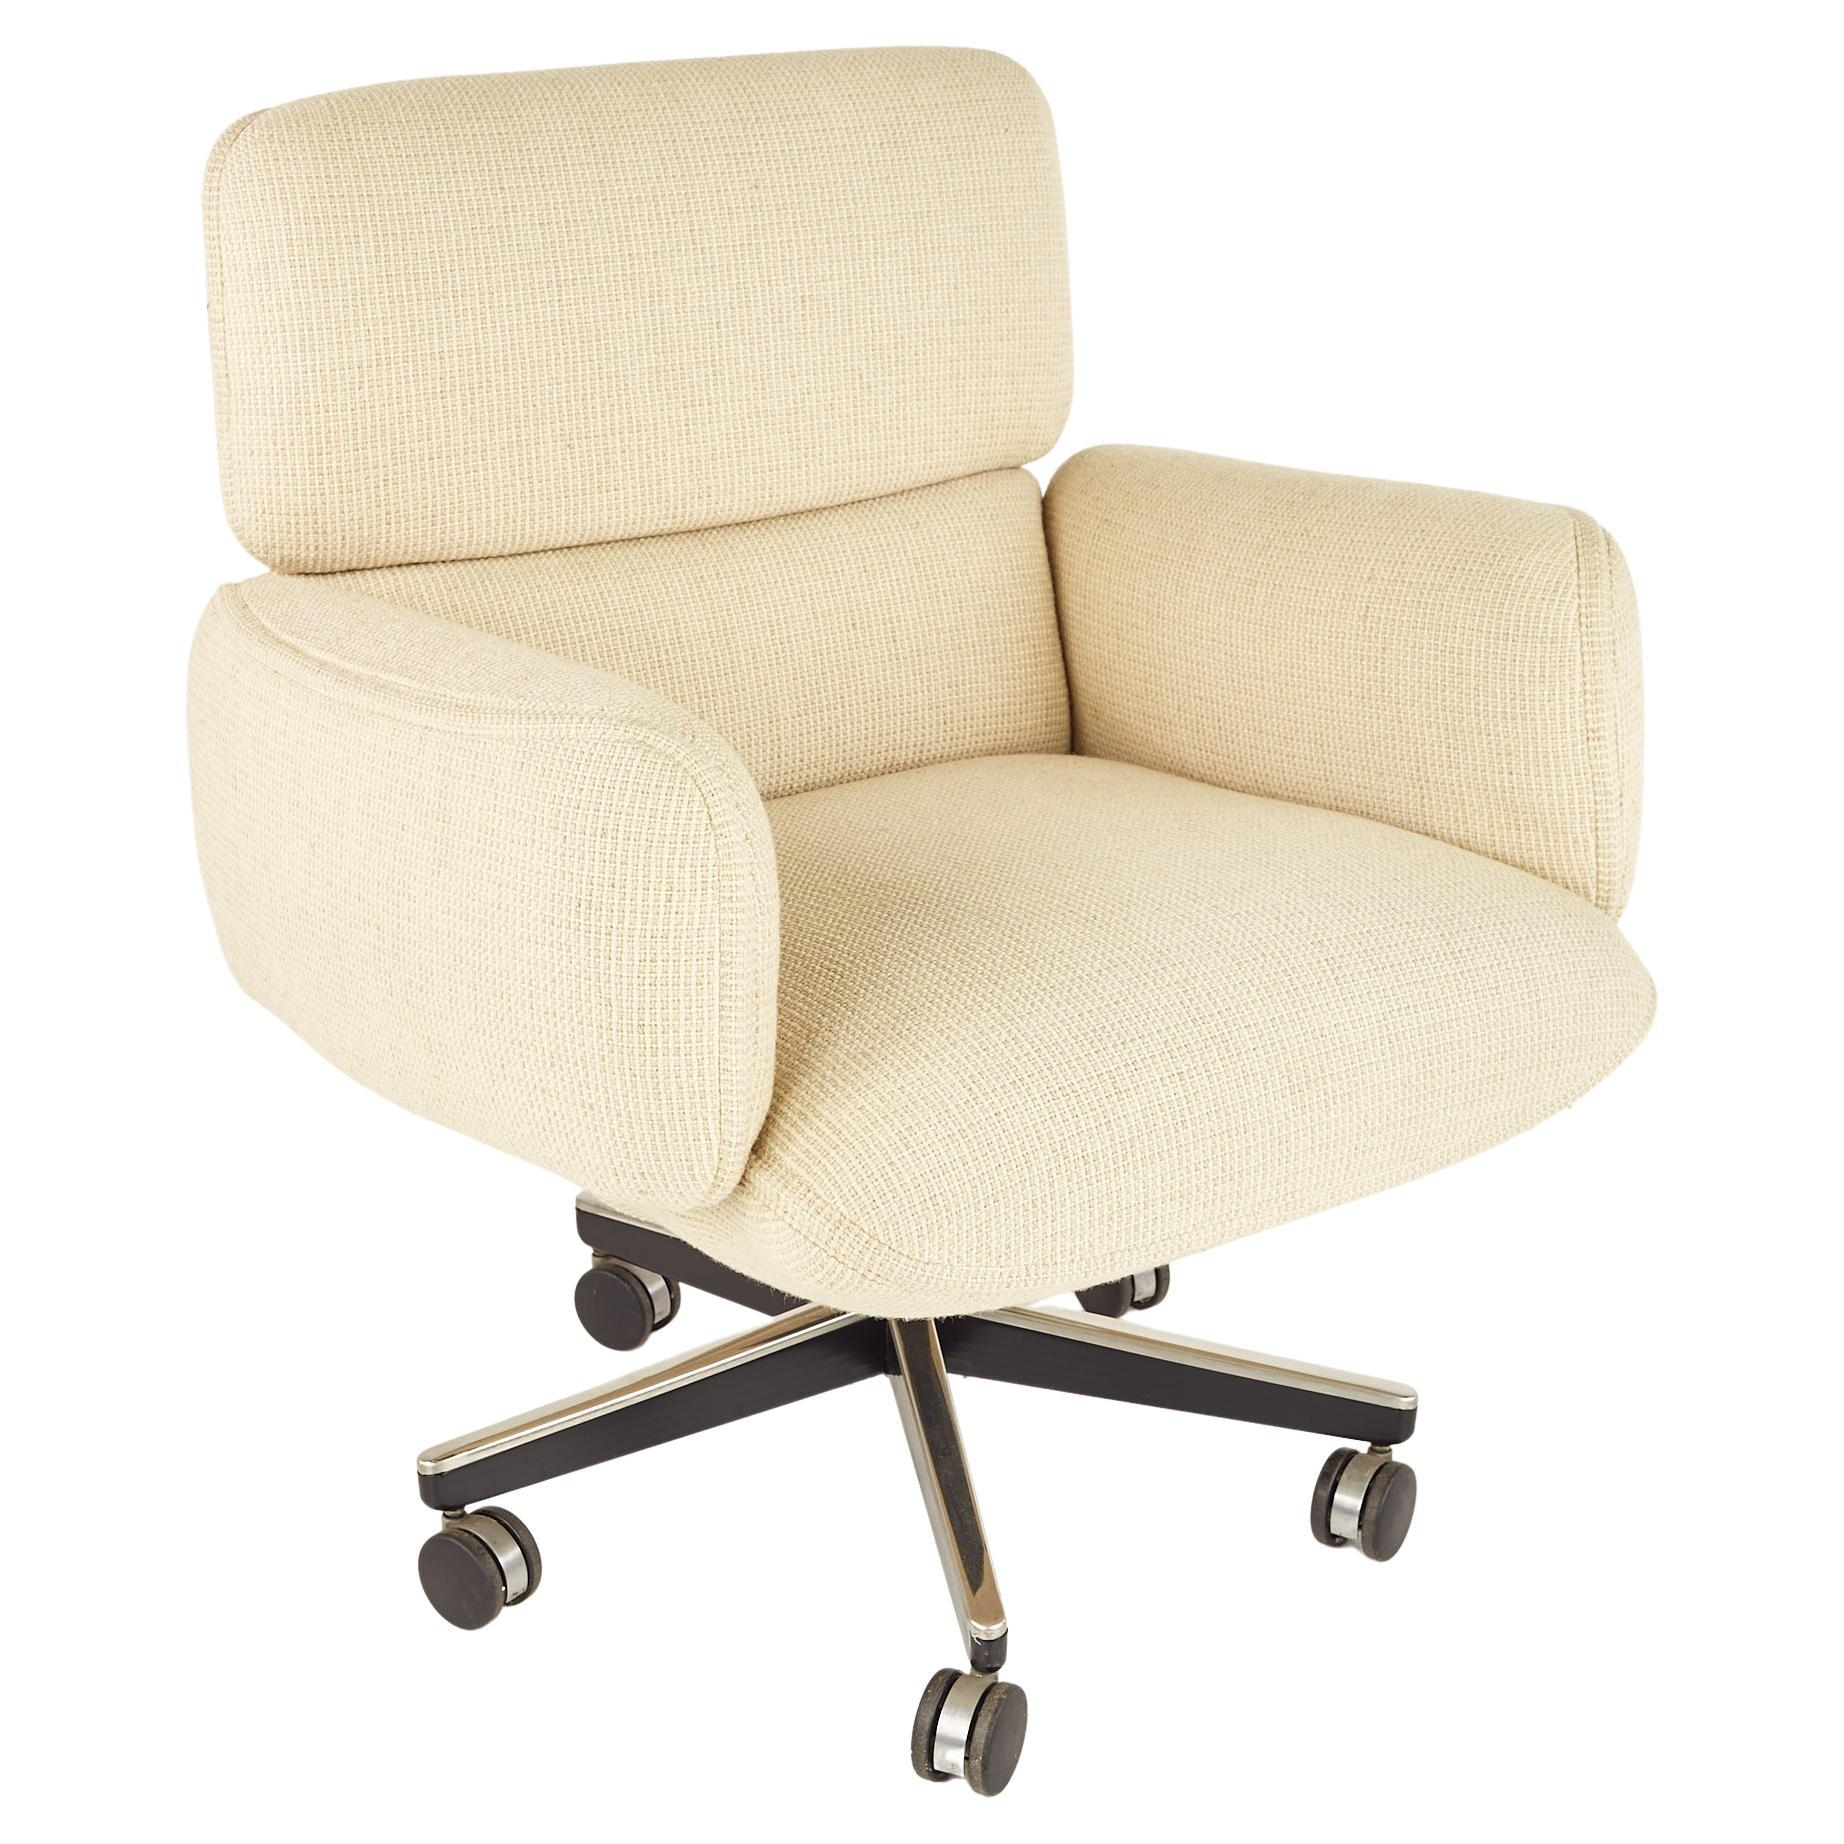 Otto Zapf for Knoll Mid Century Upholstered Office Chair